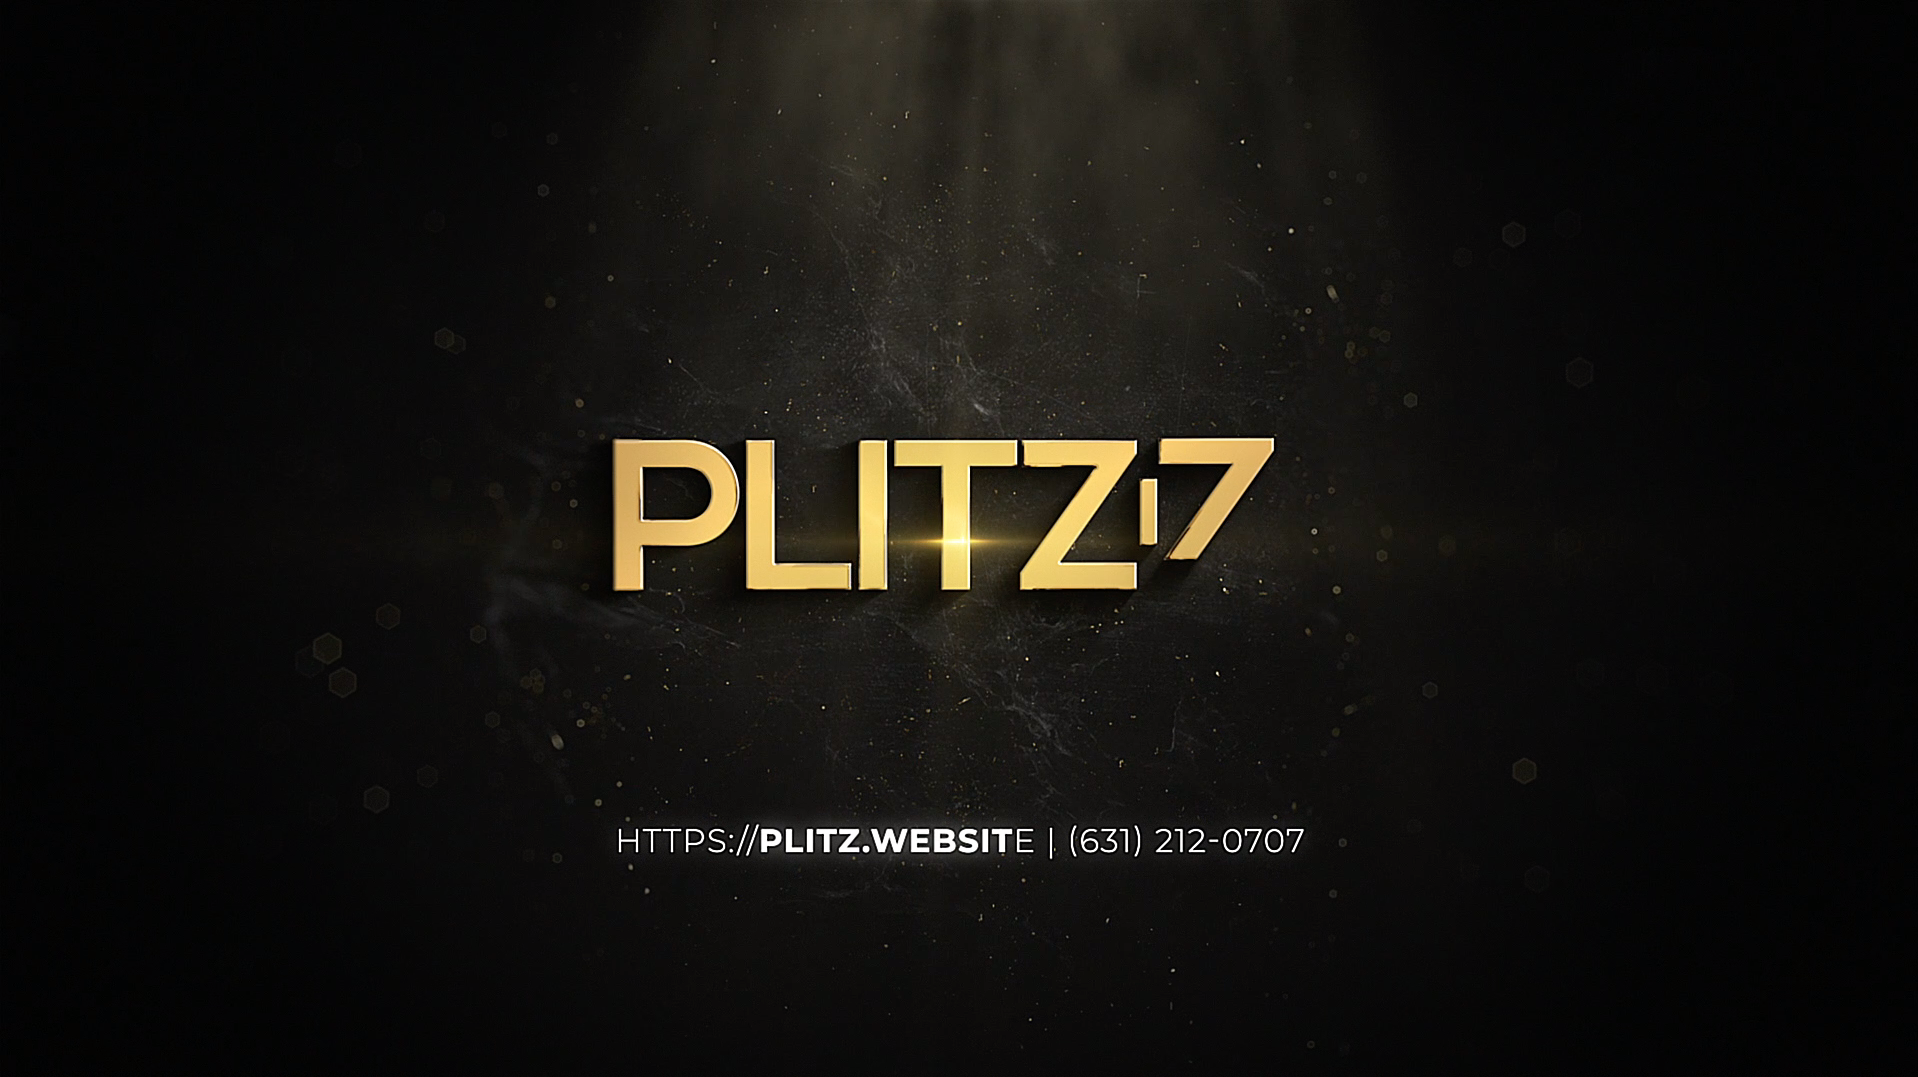 Plitz Corporation, web company